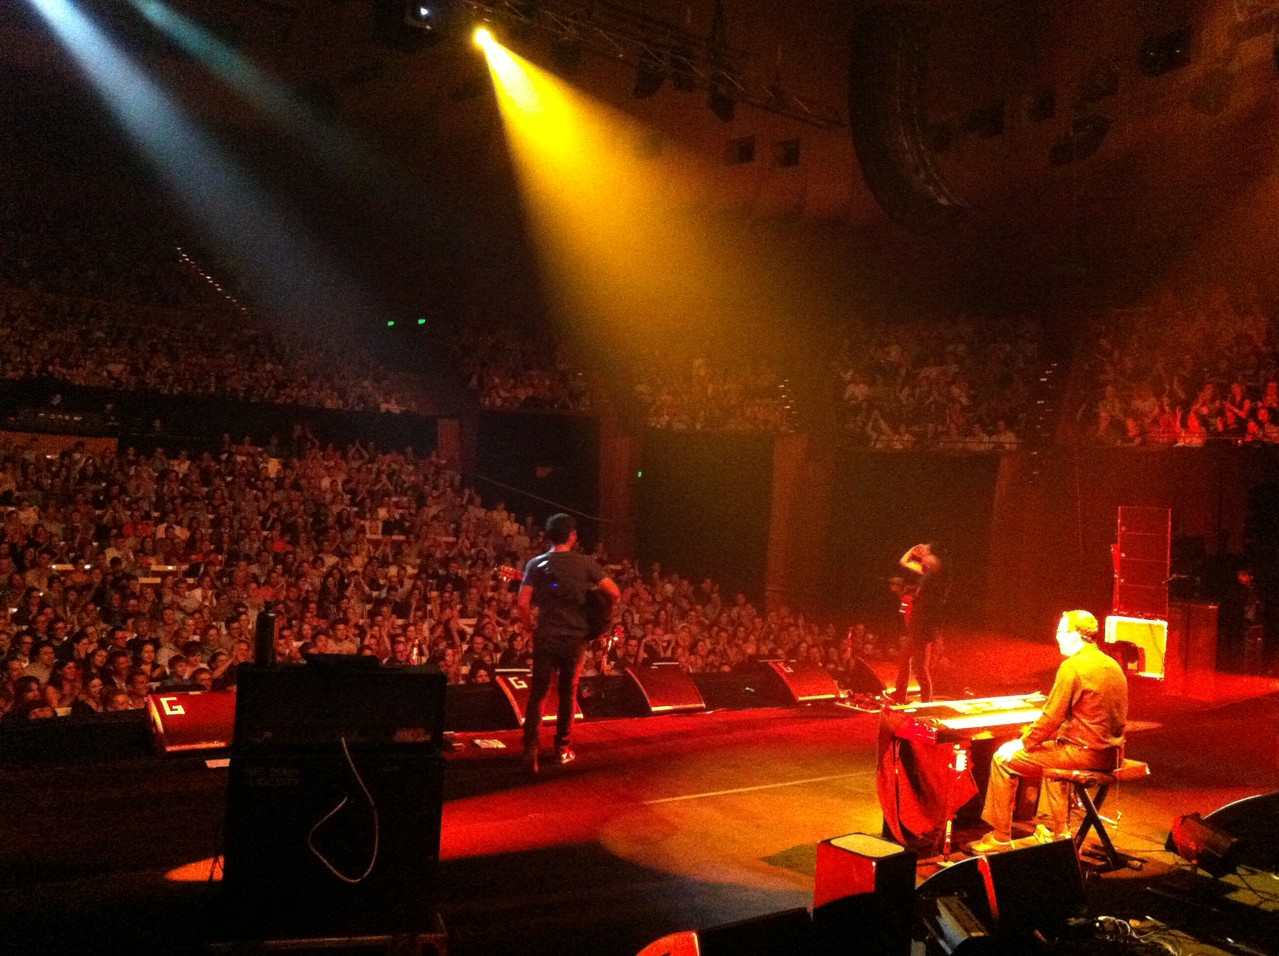 And the show starts - sold out in the main concert hall! — at Sydney Opera House.